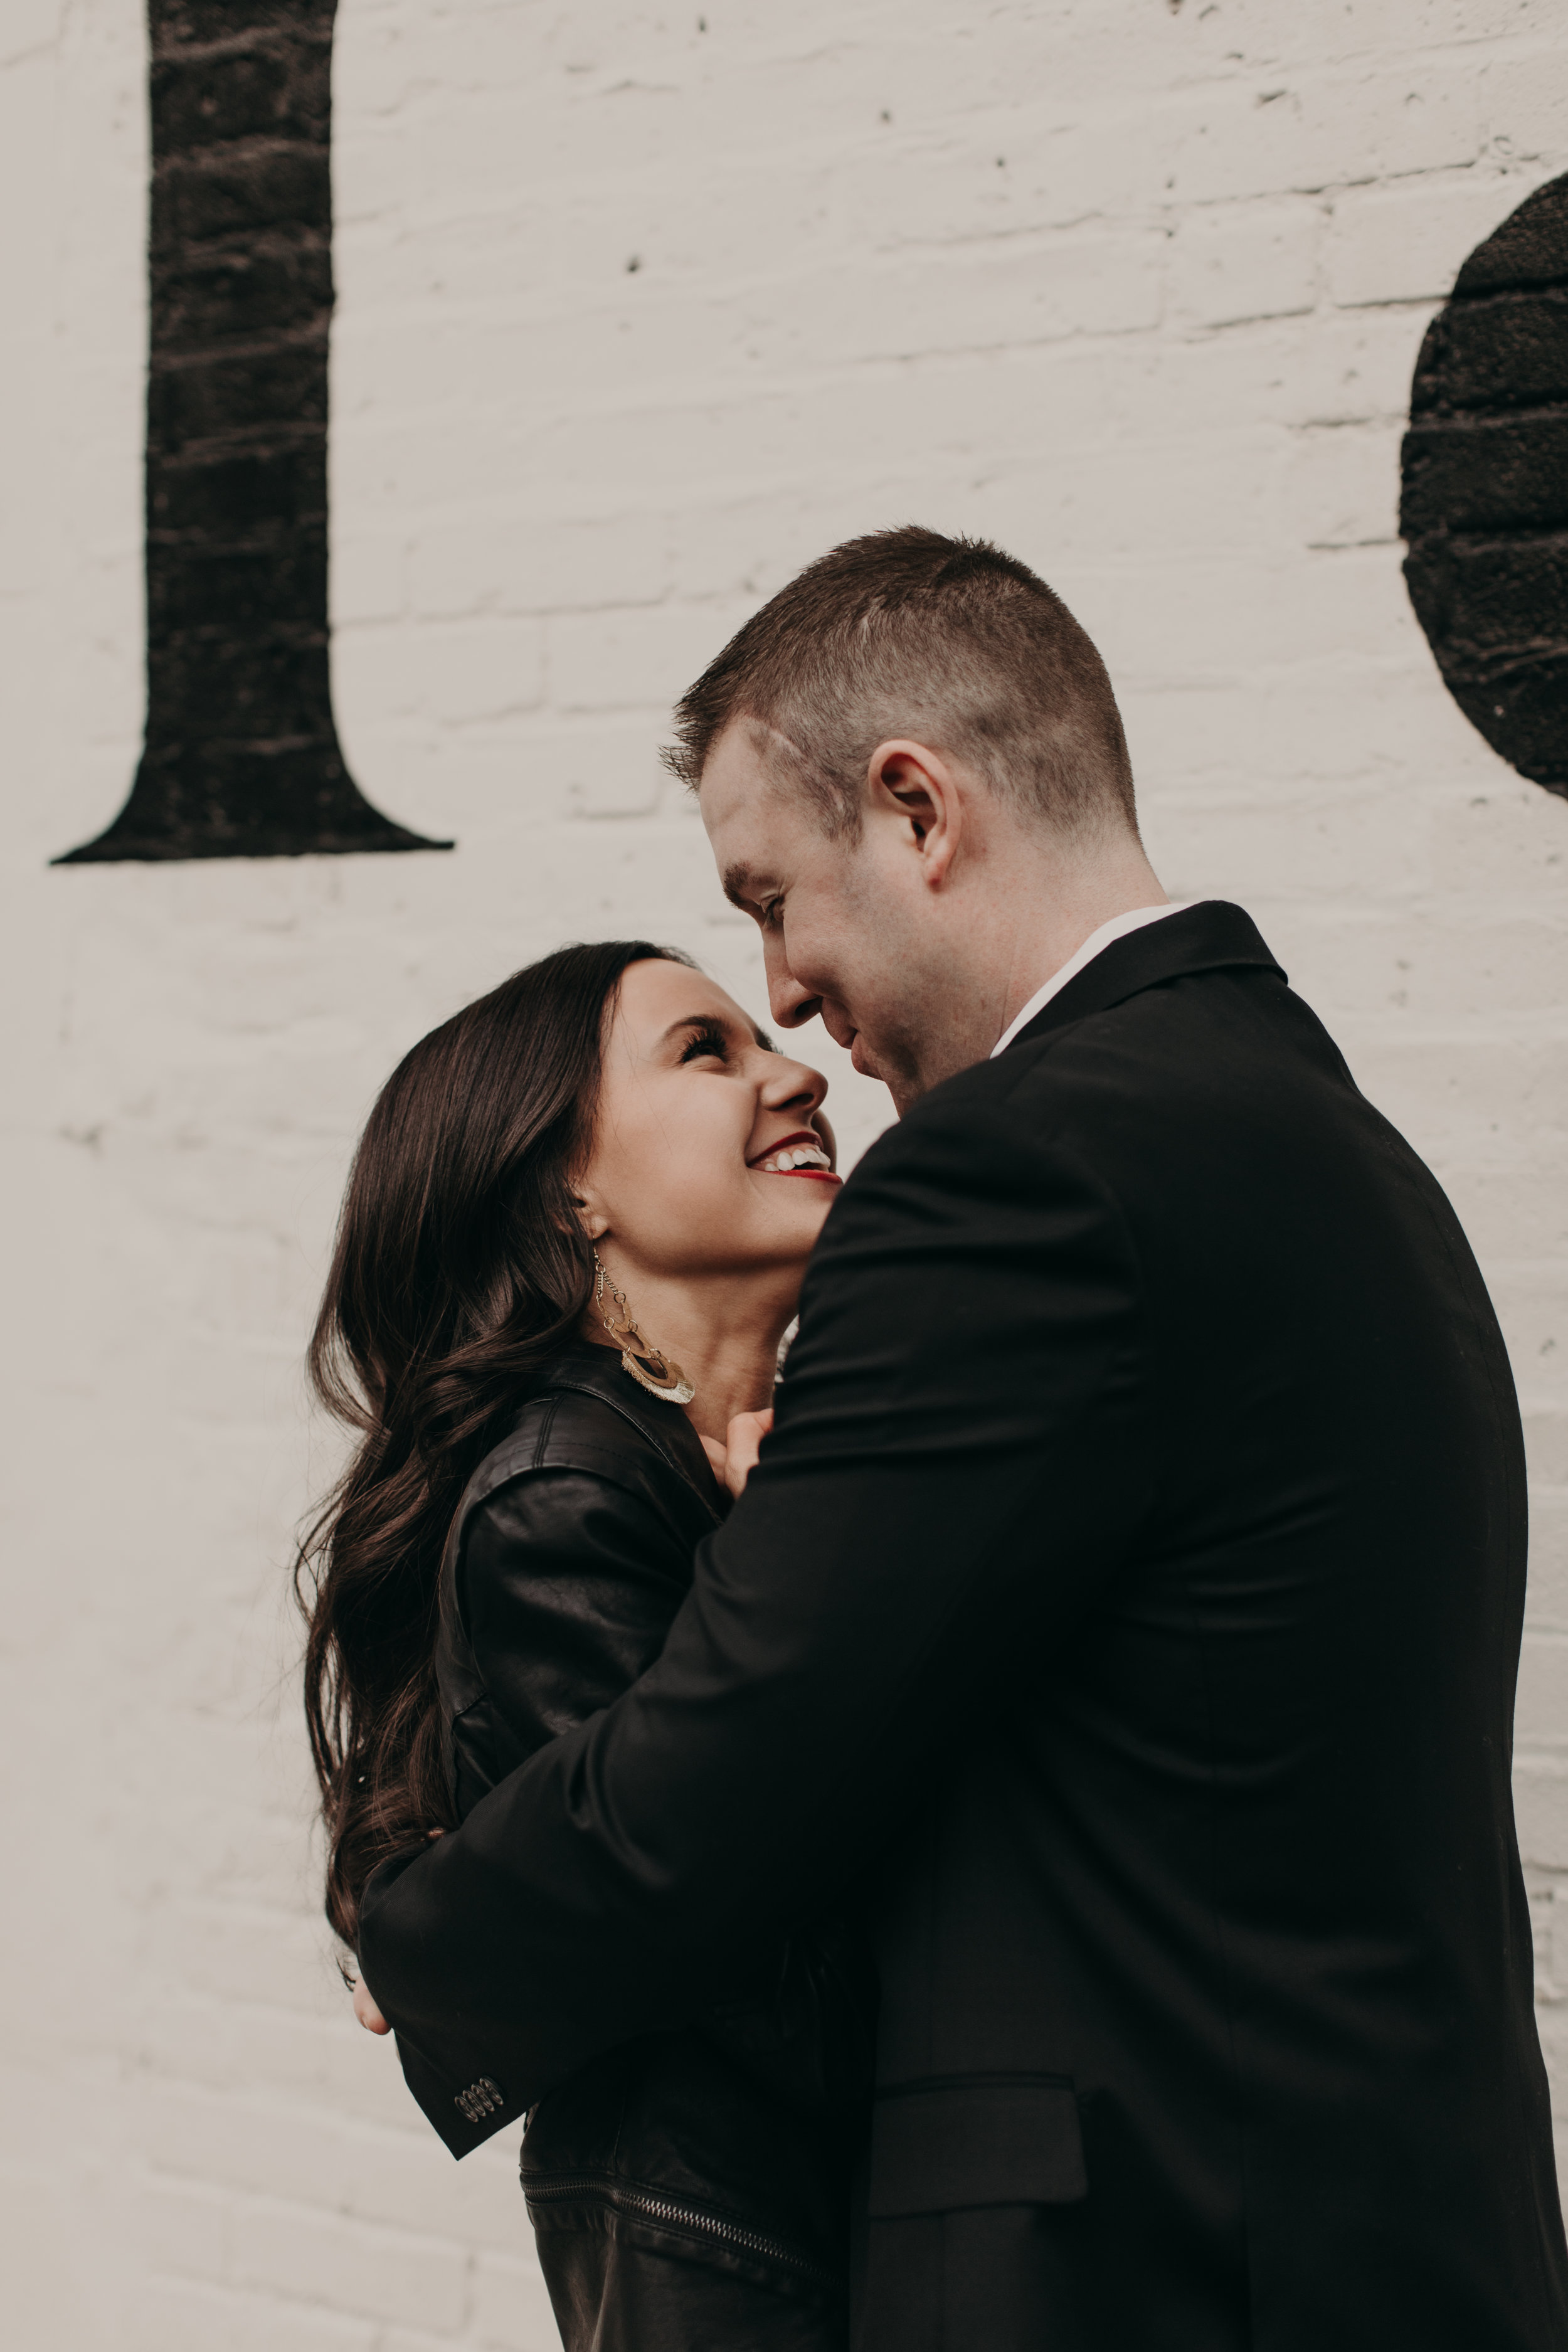 Chris_Marissa_Downtown_Providence_Rhode_Island_Engagement_Session_009.jpeg